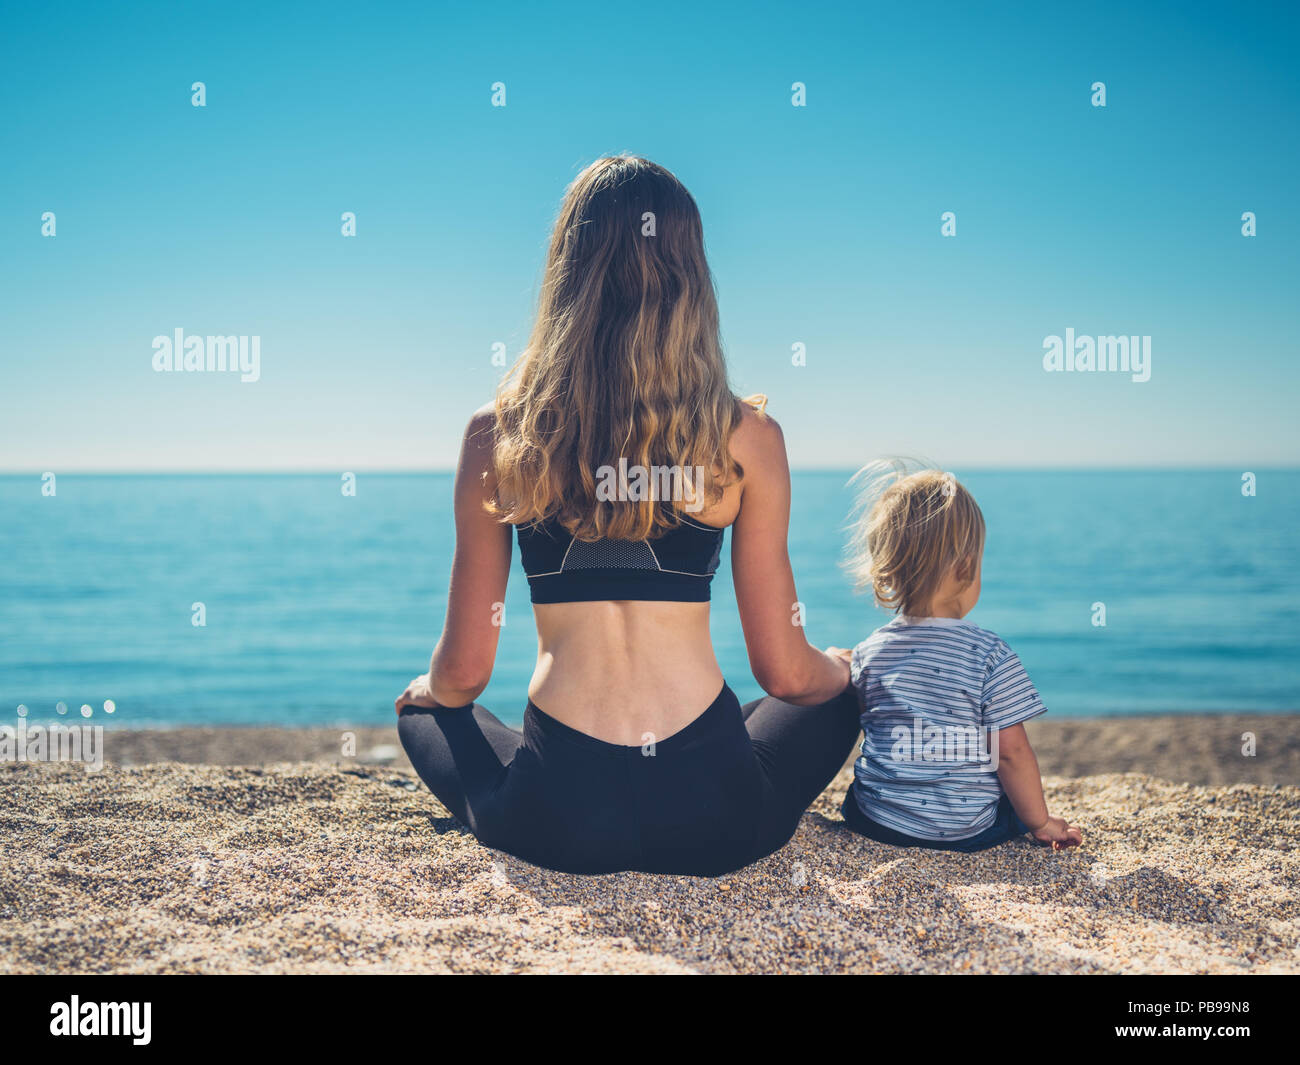 A young mother in fitness wear is relaxing on the beach with her toddler - Stock Image